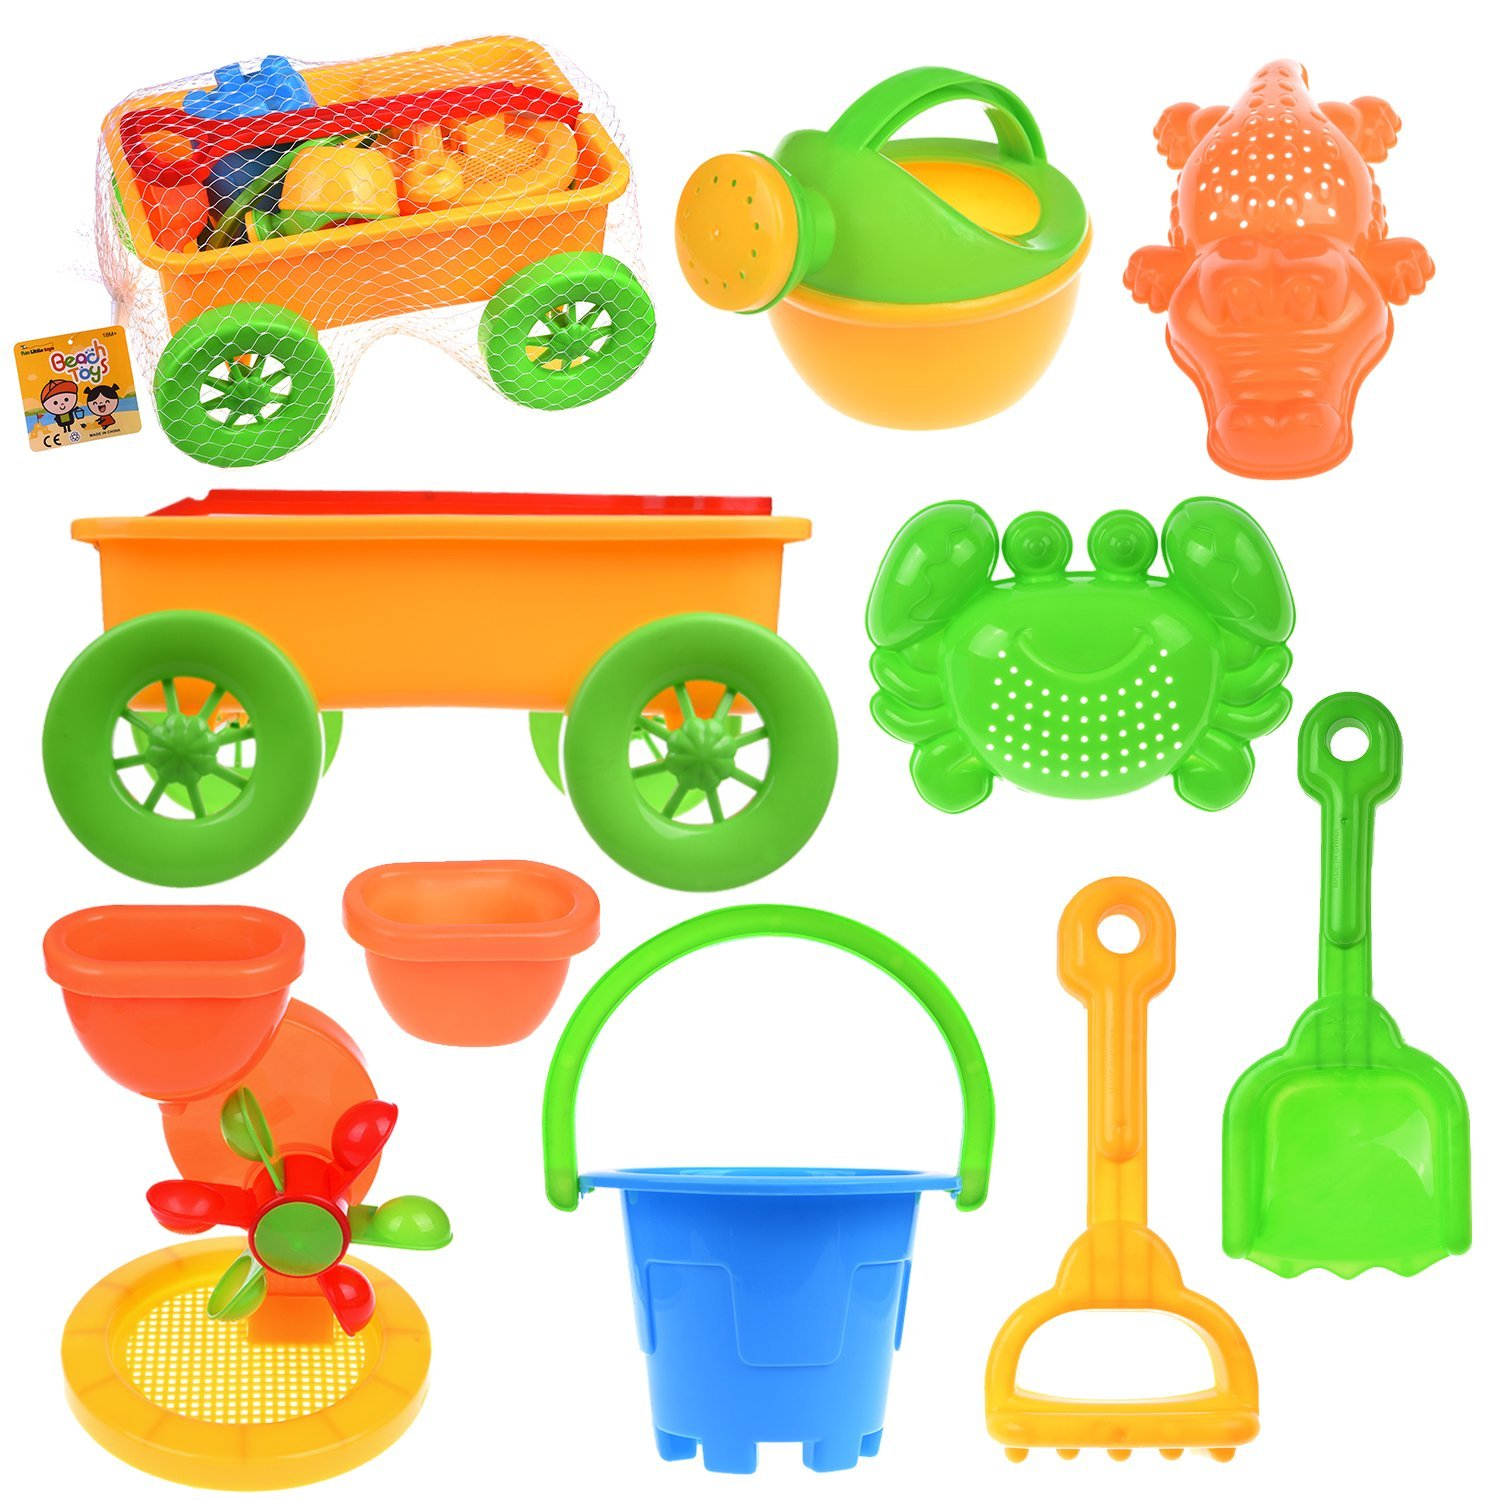 Beach Sand Toys for Kids Summer Outdoor Activities Educational Pretend Play Set with Sand Wheel for Watering Can,... by Fun Little Toy